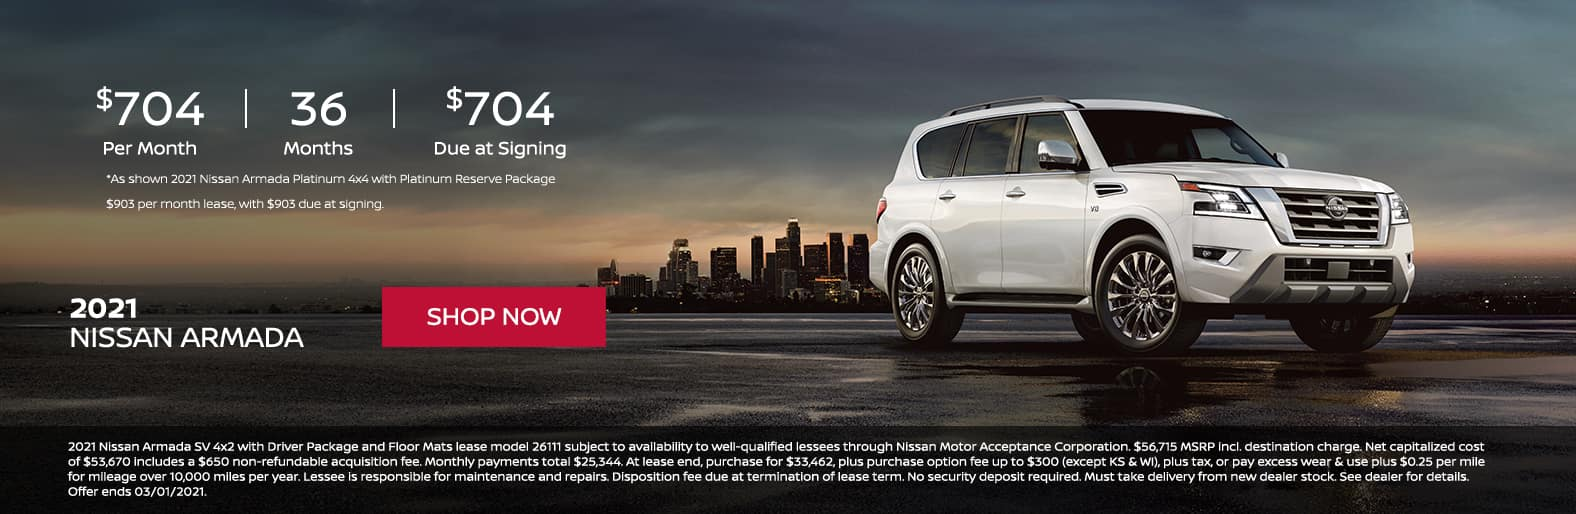 MY21 Armada Lease for $704 per month 36 months with $704 due at signing.